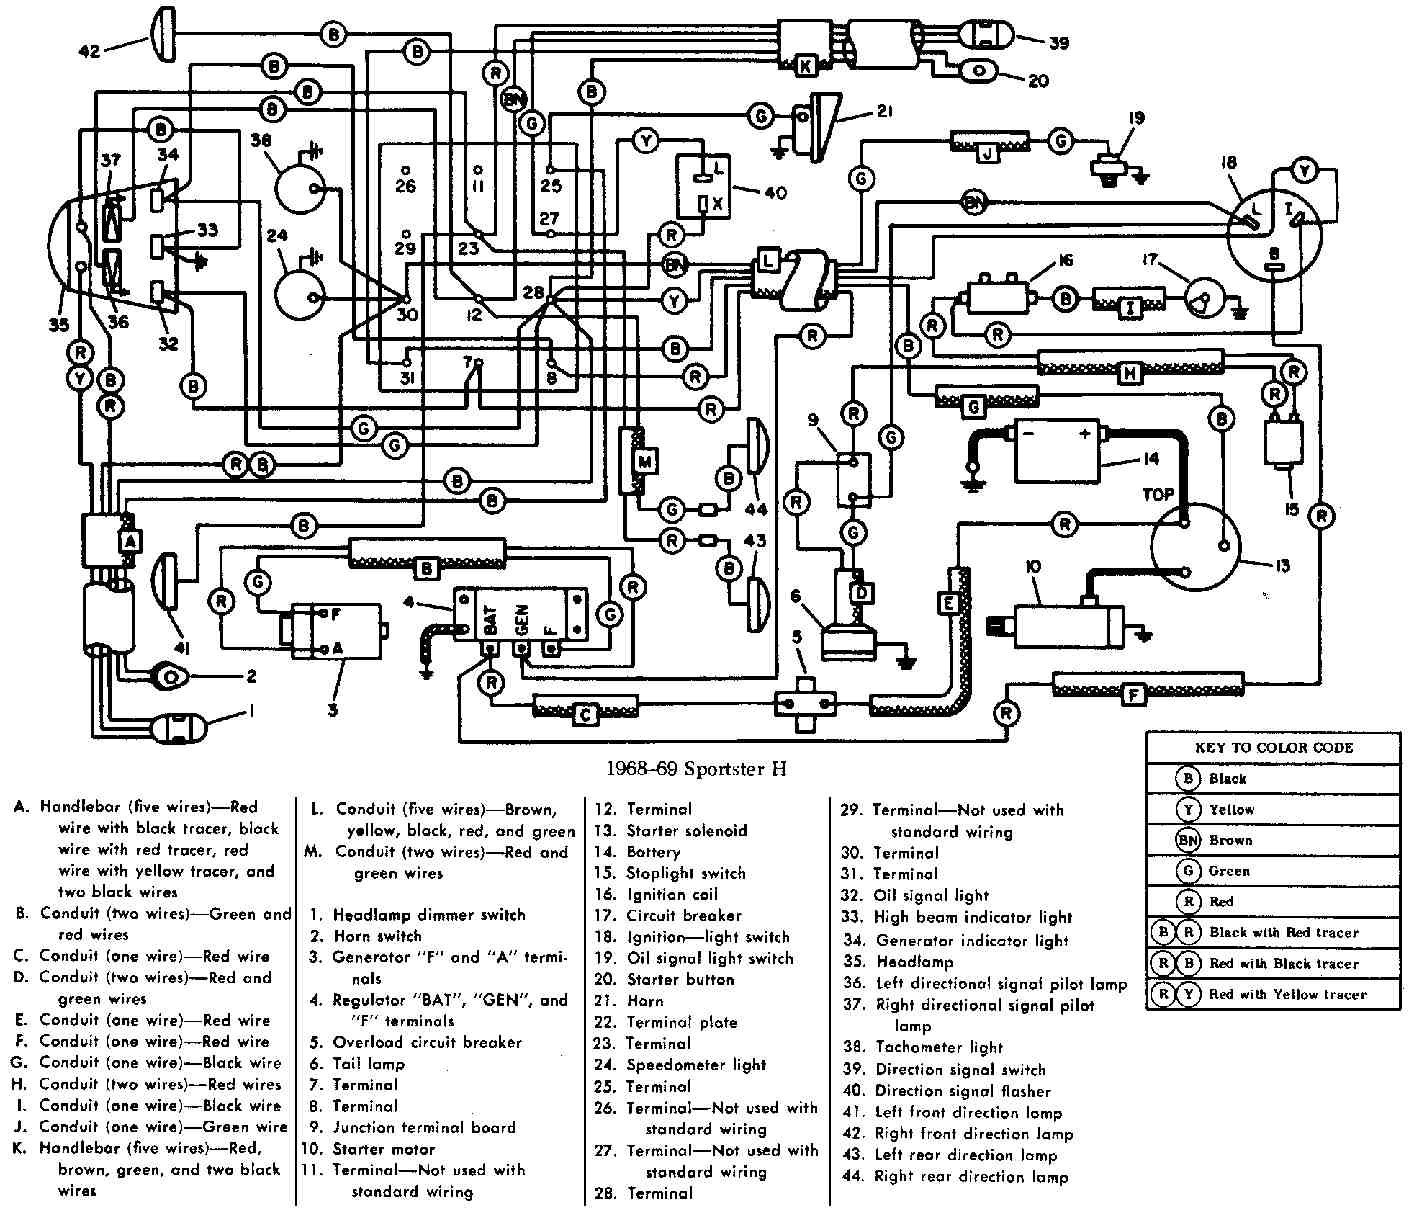 Harley Fxd Wiring Diagram - Schematics Online on